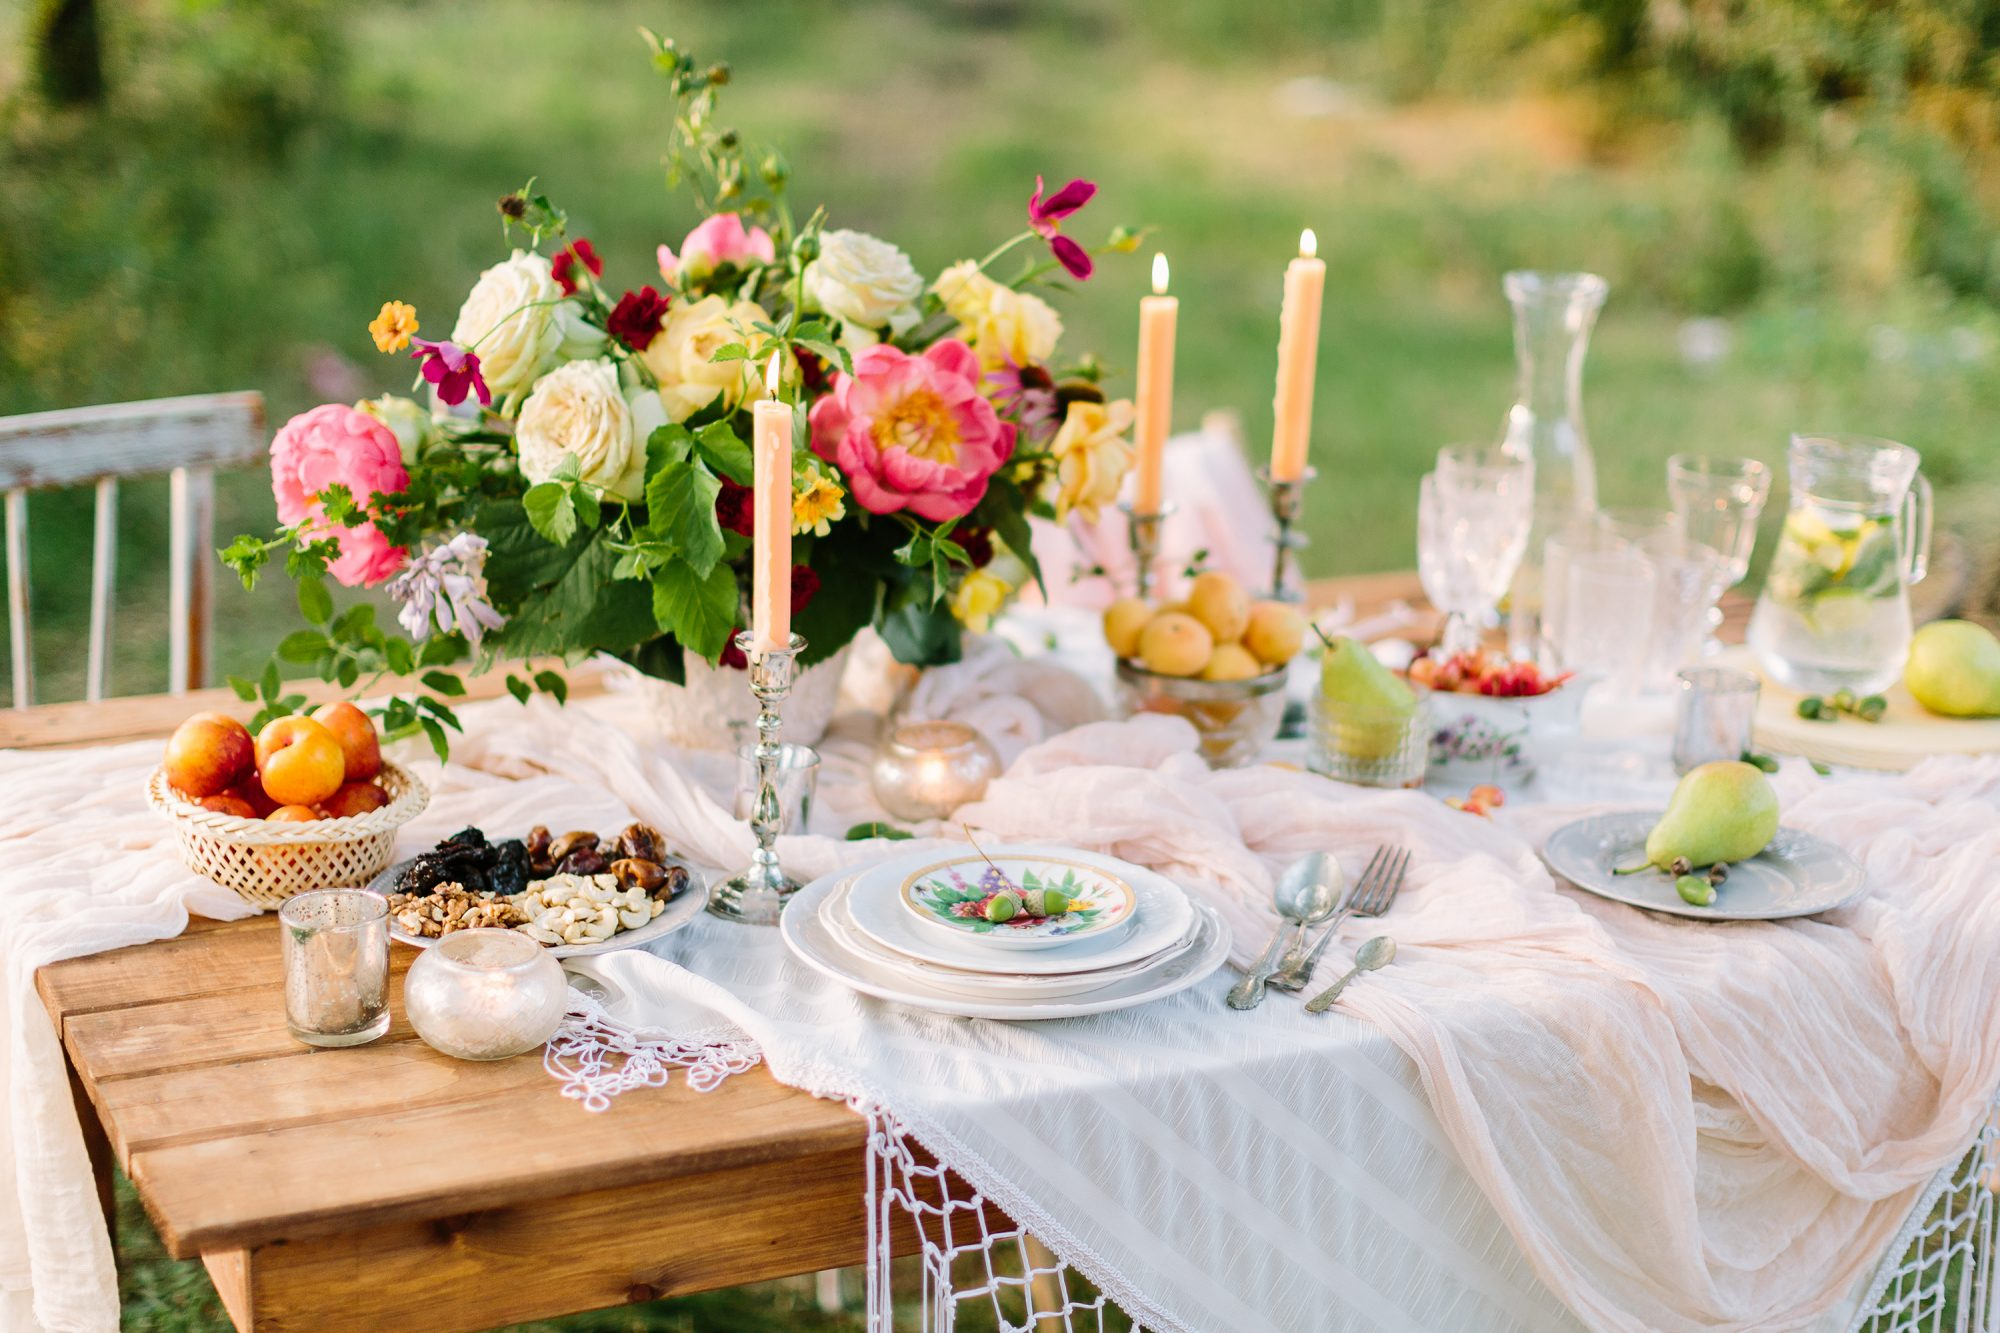 party-planning-quiz: outdoor table set for a party